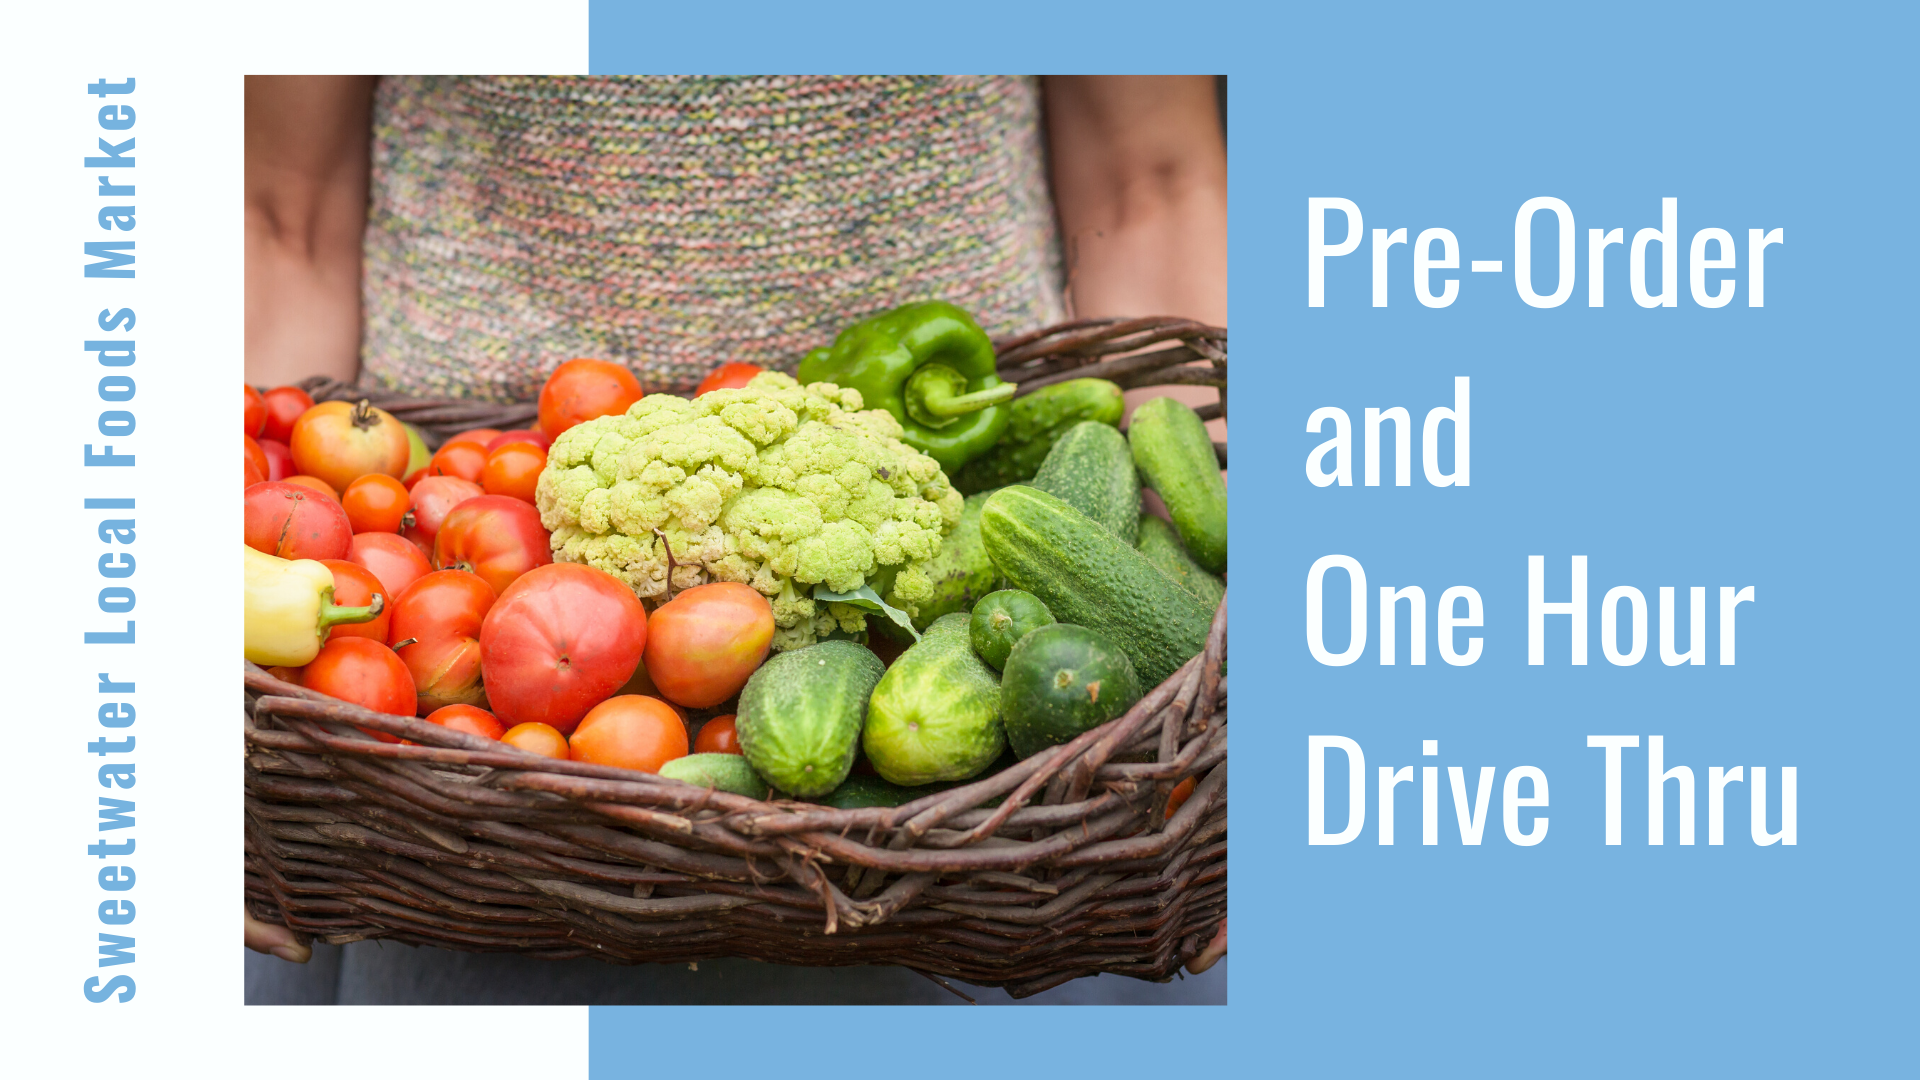 large brown, weaved basket of red tomatoes, white califlower, green peppers and green pickles with the heading Pre-Order and One Hour Drive Thru